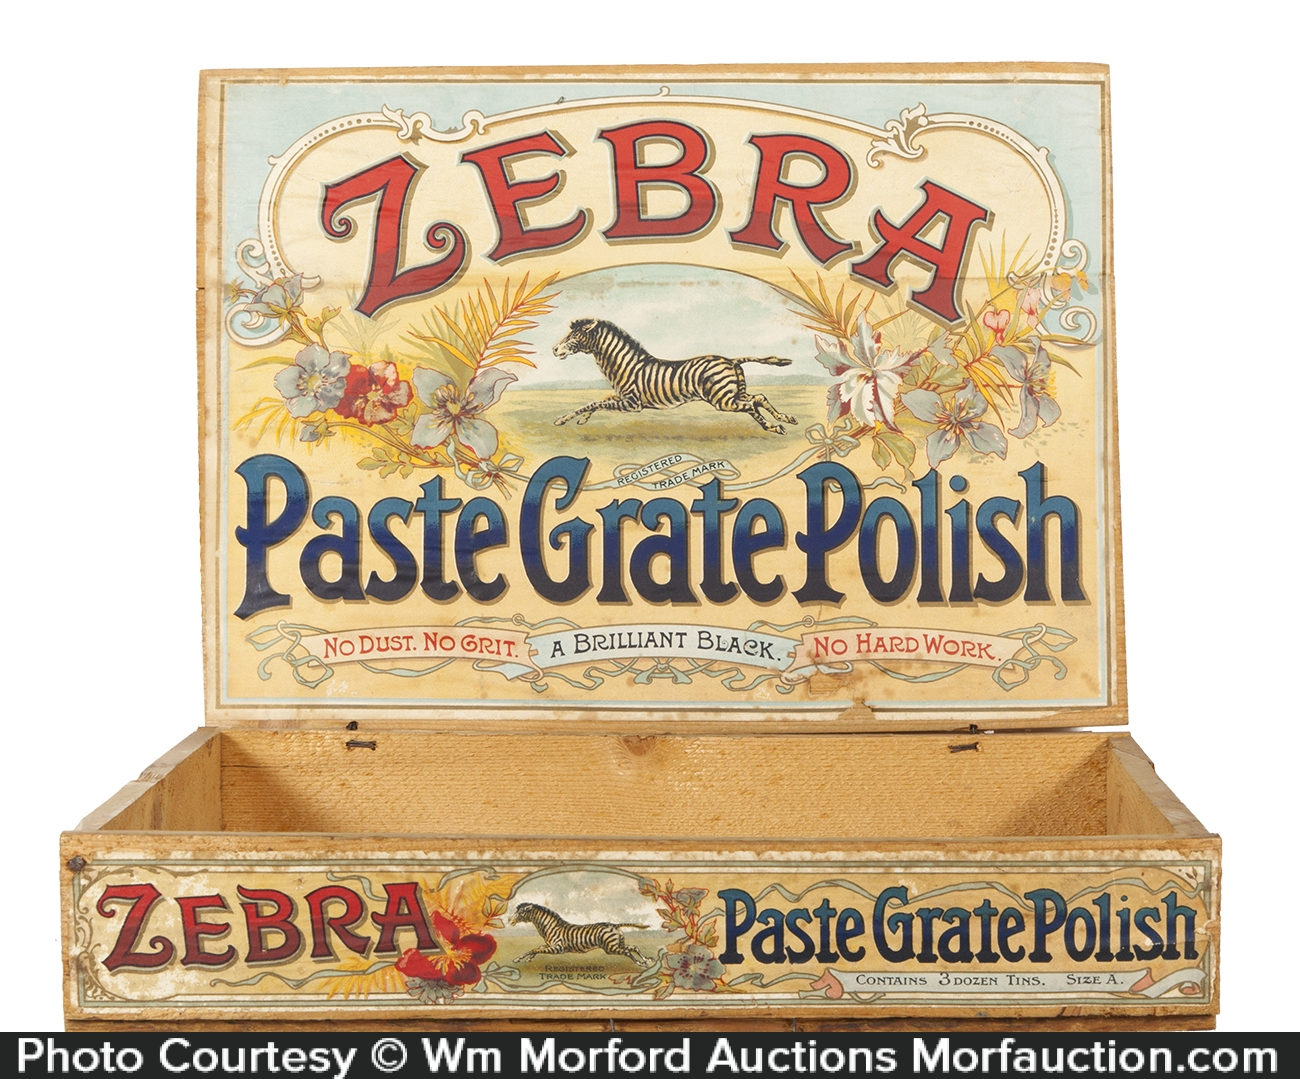 Zebra Paste Grate Polish Box